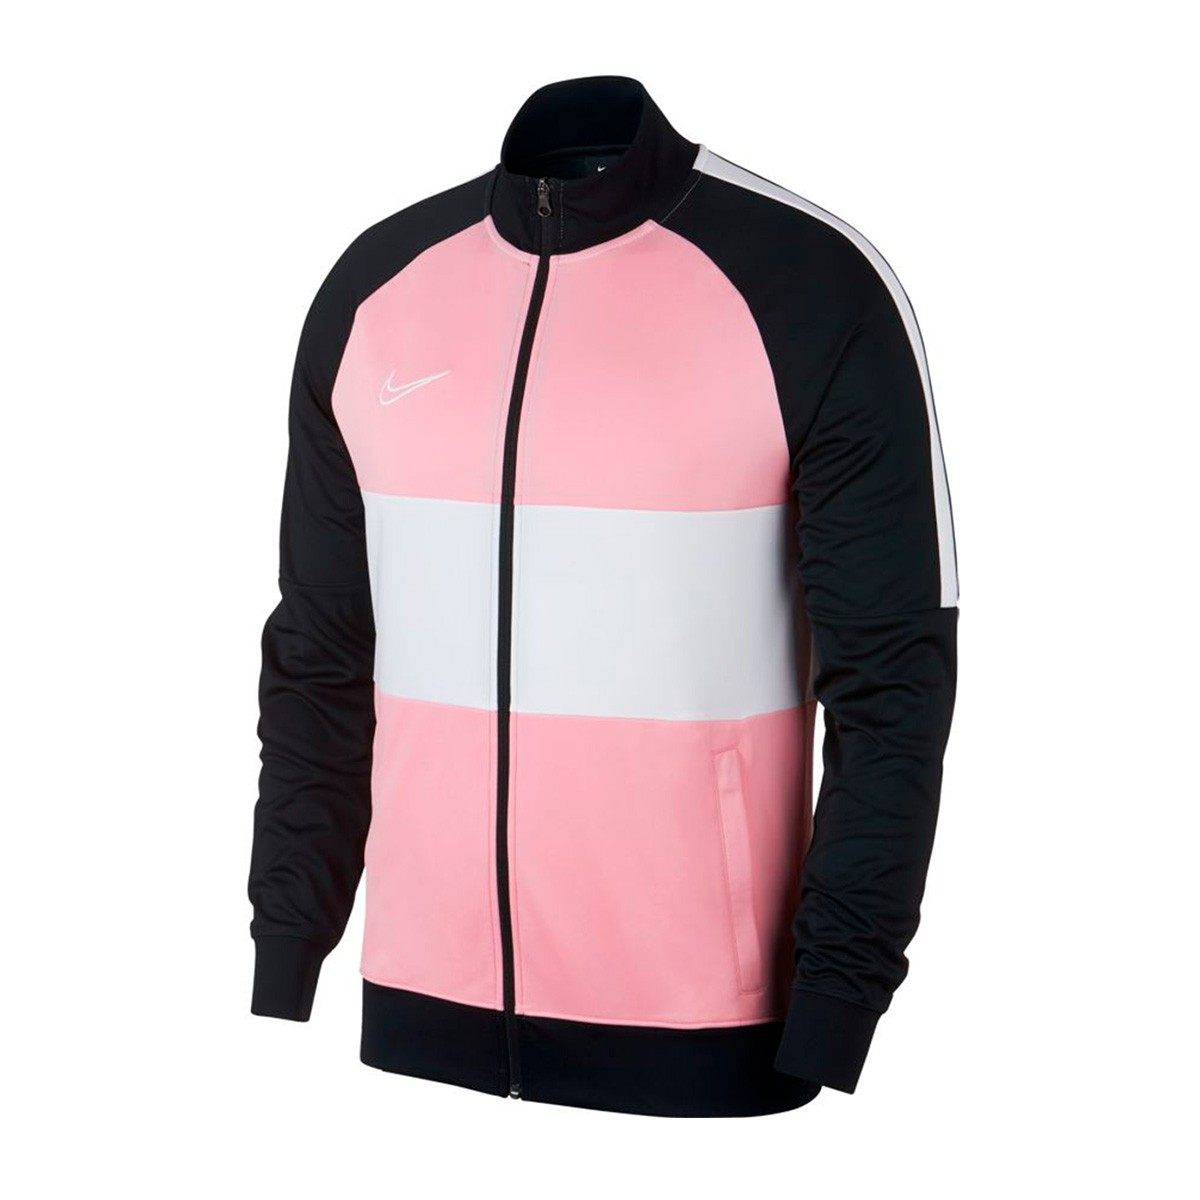 a0ec50de Jacket Nike Dri-FIT Academy Black-Soft pink-White - Football store ...